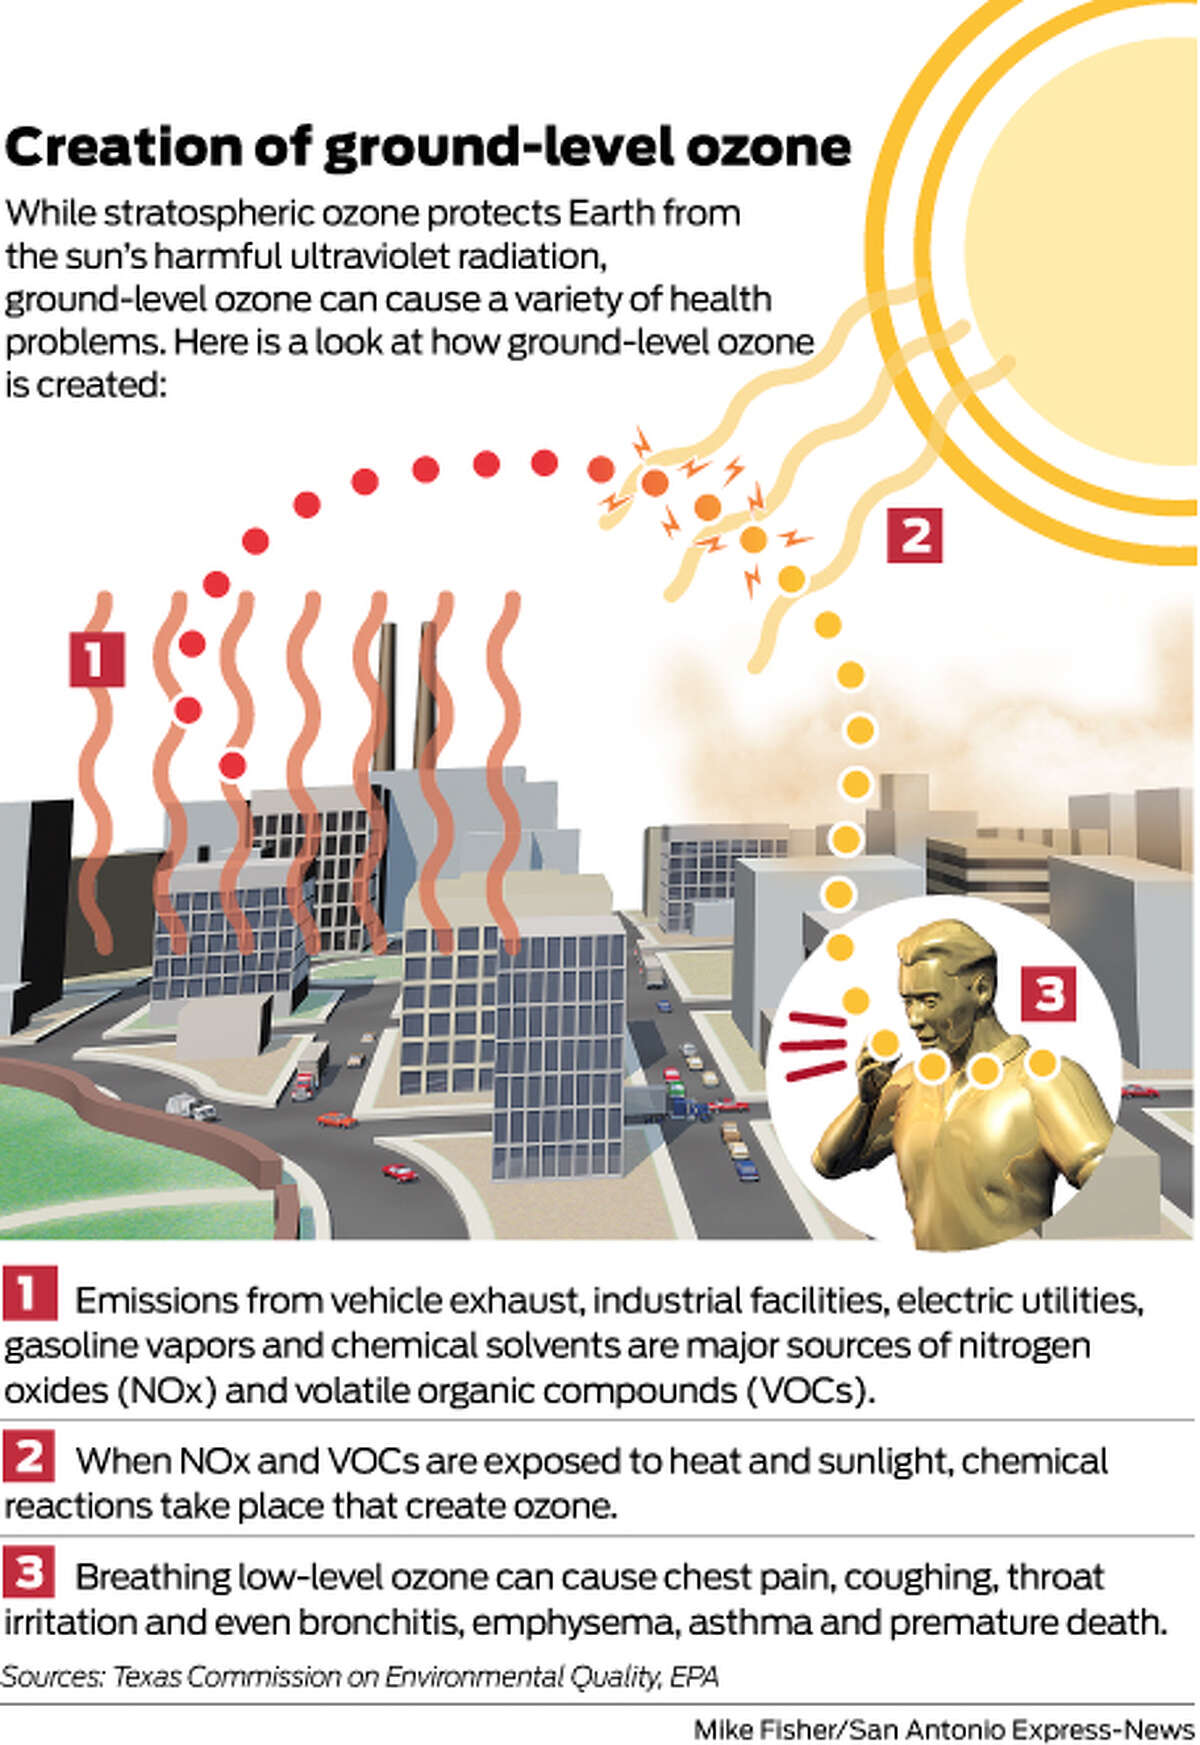 While stratospheric ozone protects Earth from the sun's harmful ultraviolet radiation, ground-level ozone can cause a variety of health problems. Here is a look at how ground-level ozone is created: